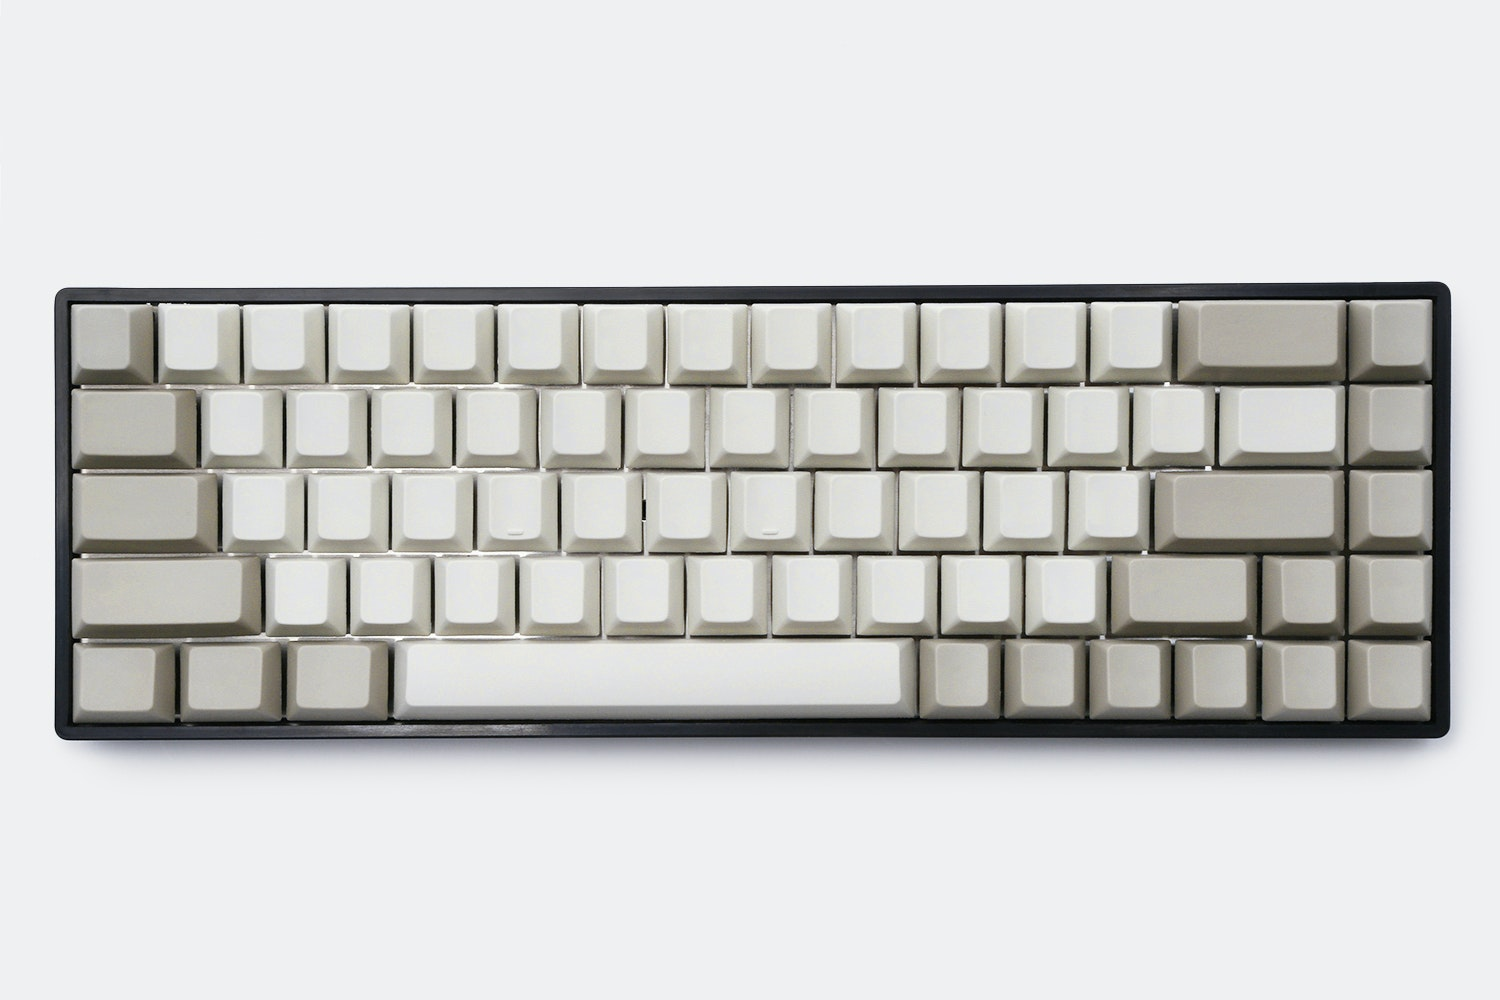 Tada68 Custom 65% Mechanical Keyboard Kit